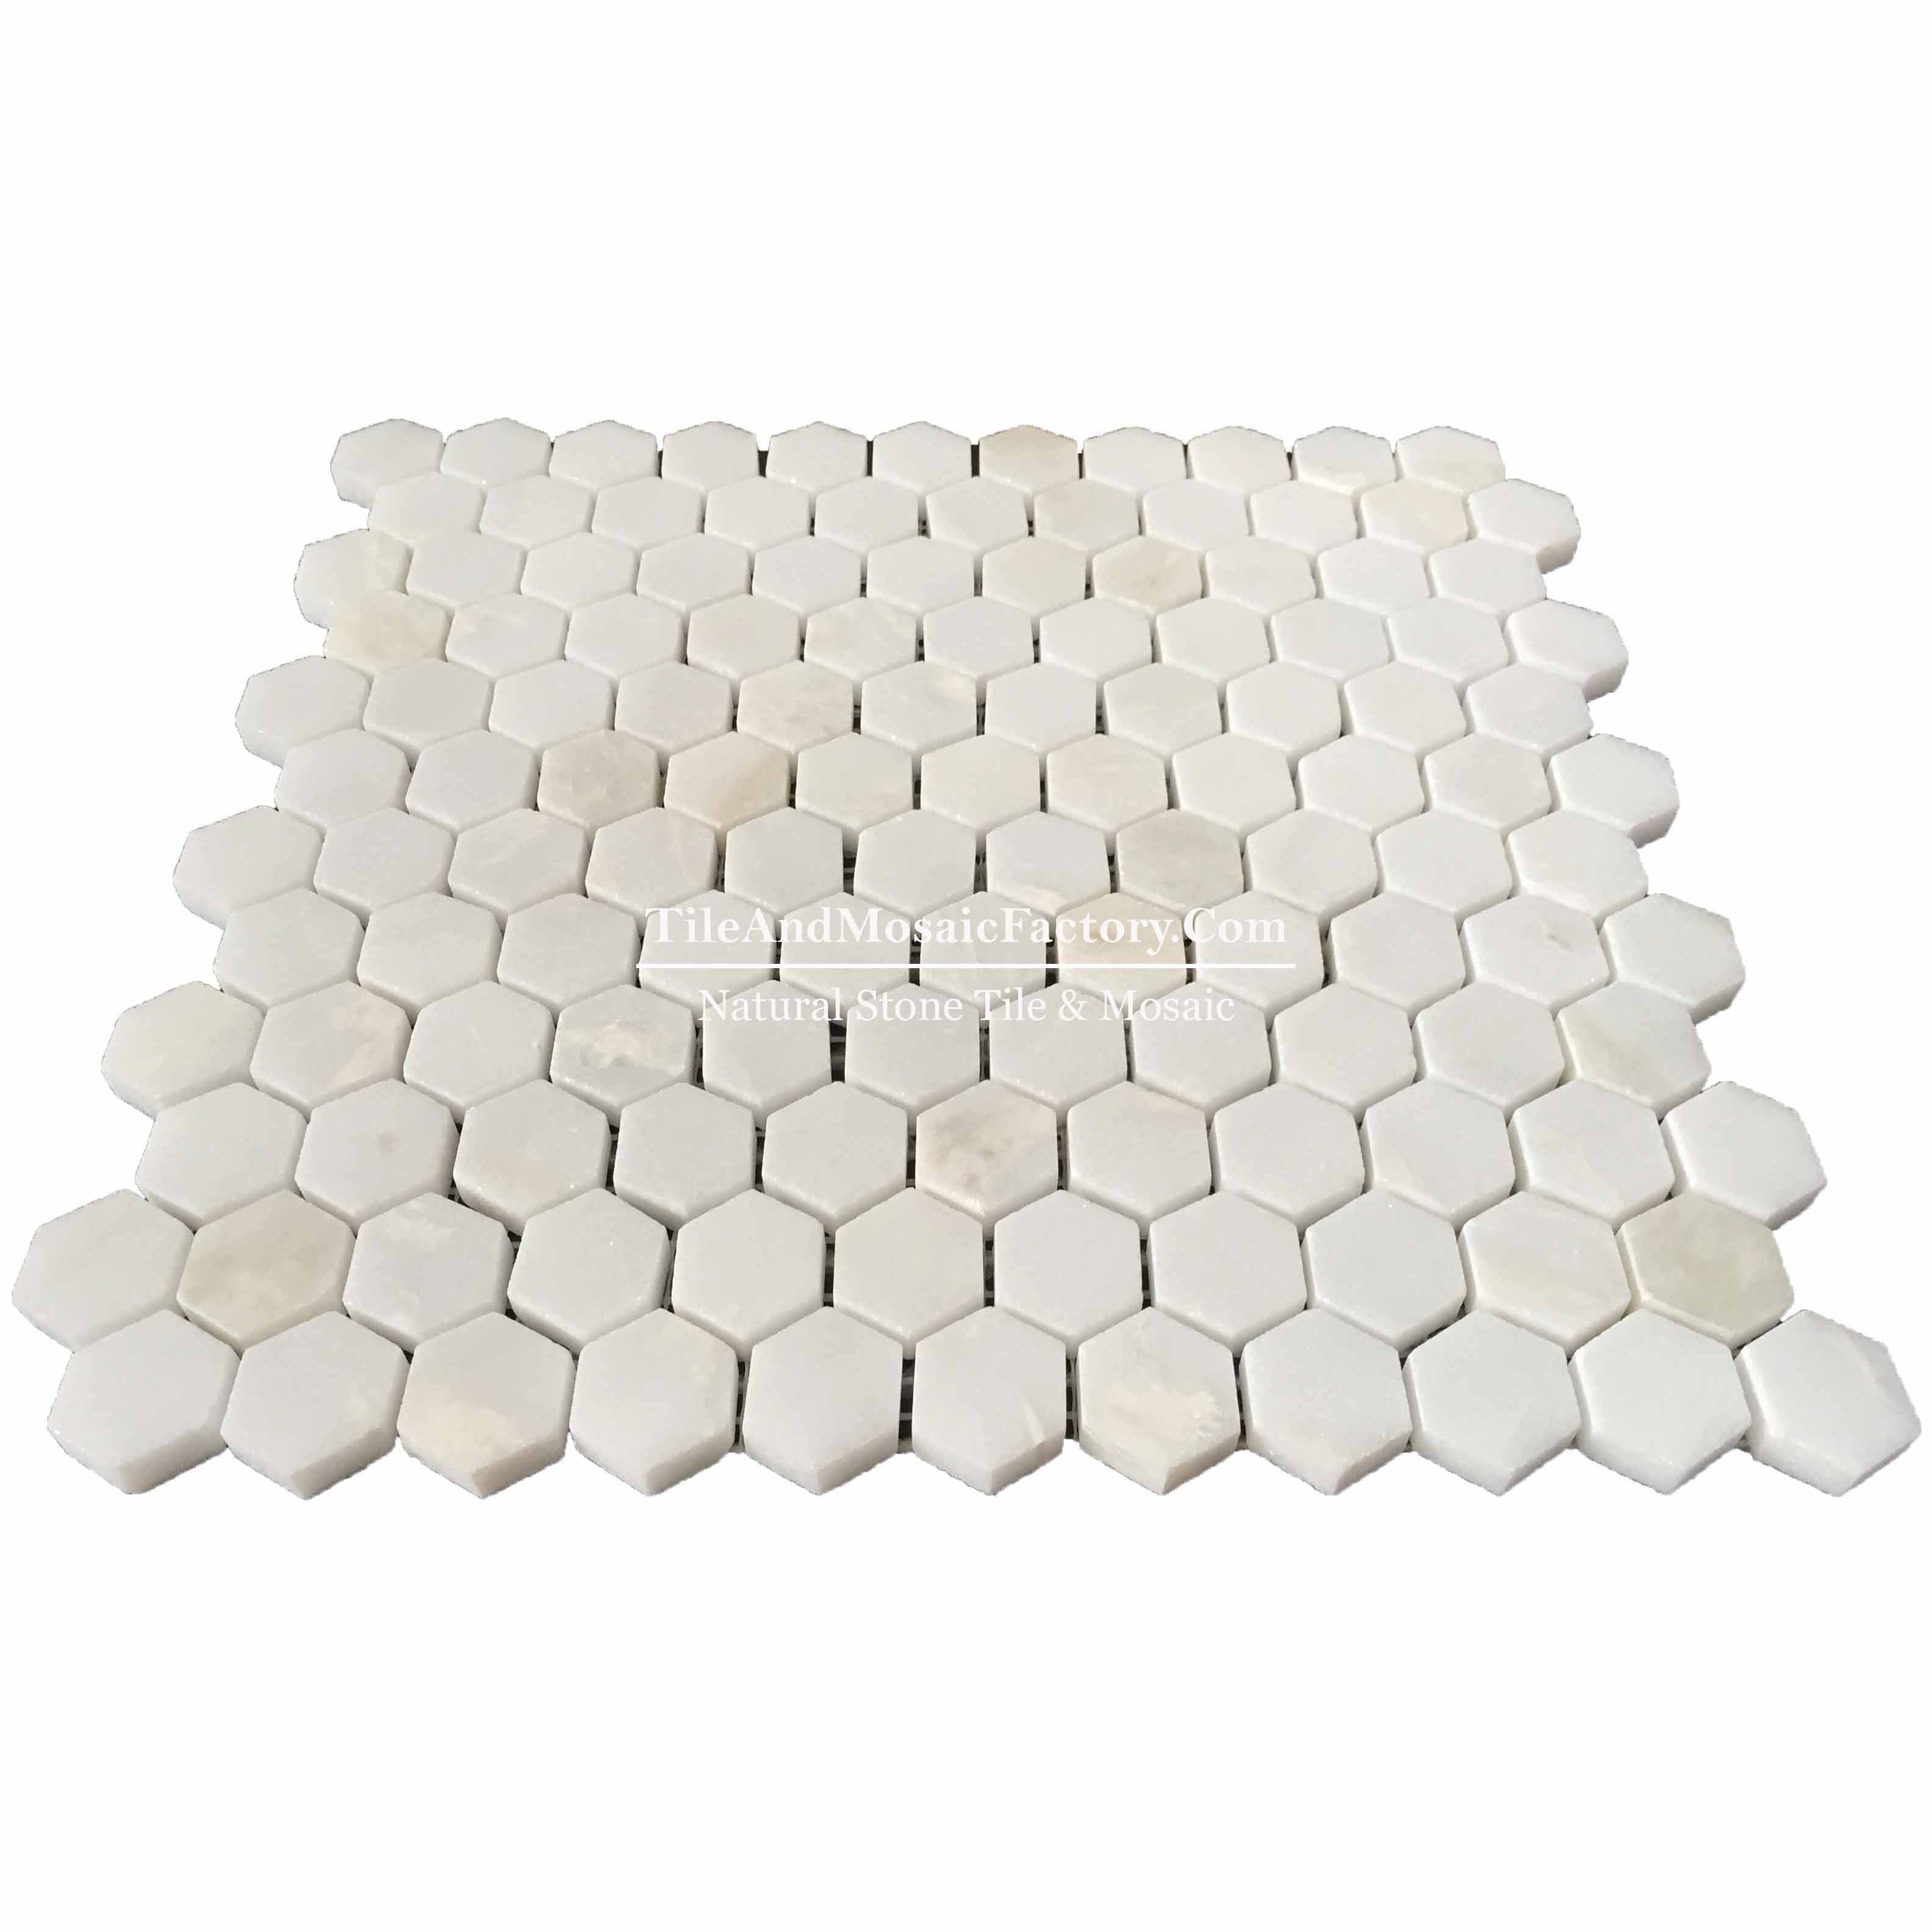 "Rhino White Hexagon 1"" polished White color Marble Mosaic"